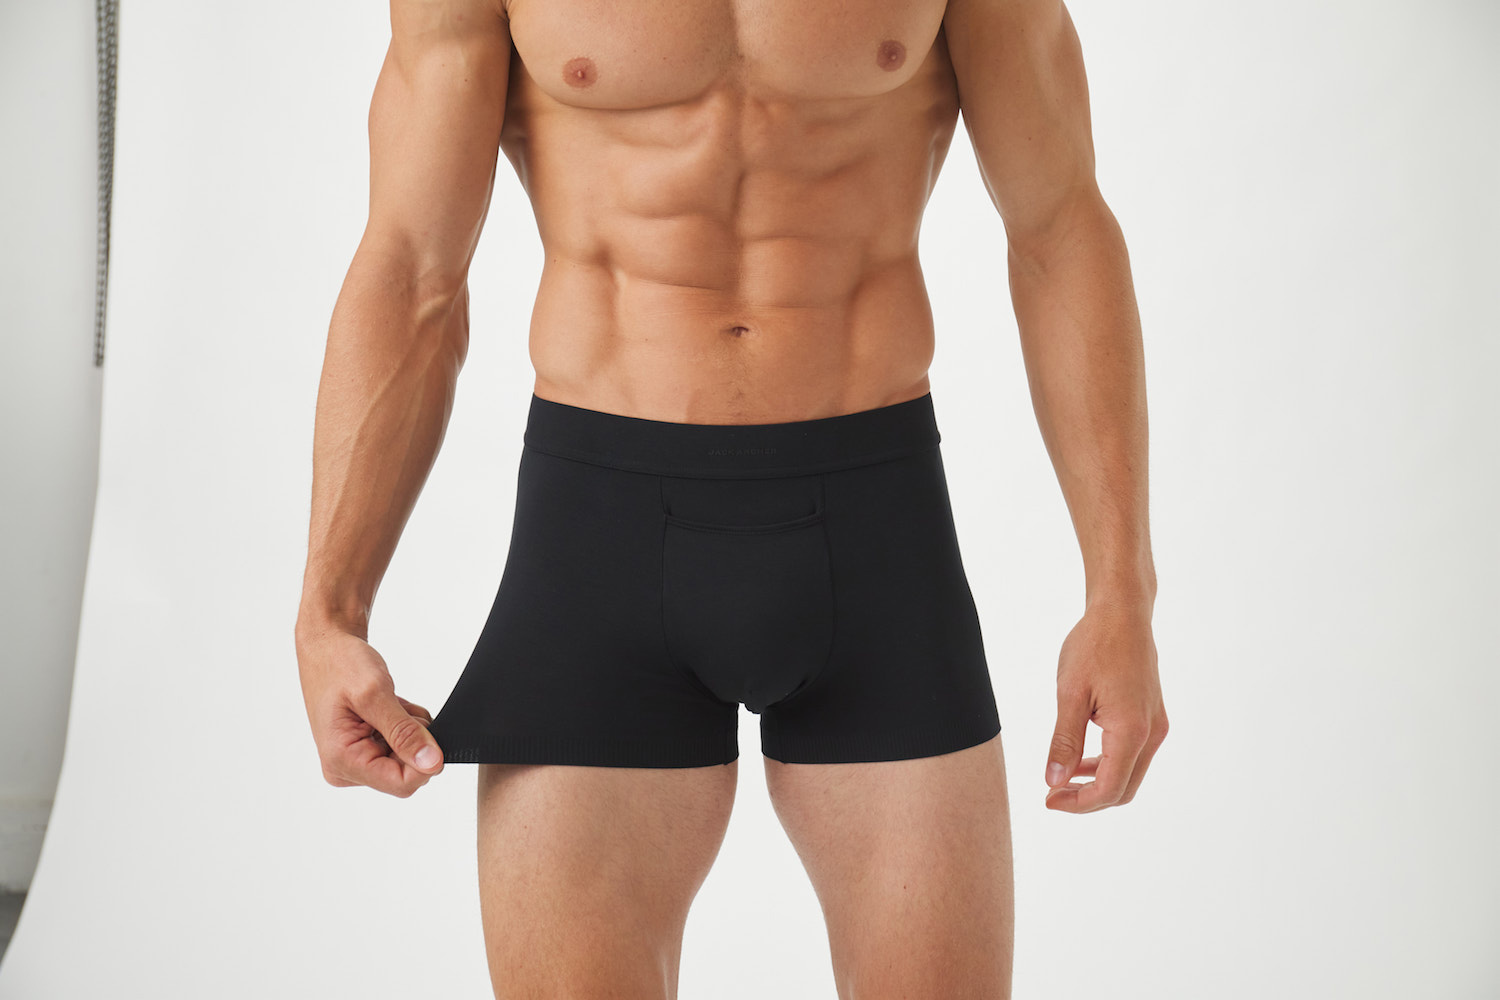 Model-Onmodel-in-studio-instudio-Damion-Lloyd-Photography-Commercial-Product-Apparel-Clothing-Los-Angeles-Orange-County-male-man-Jack-Archer-close-up-black-boxer-brief